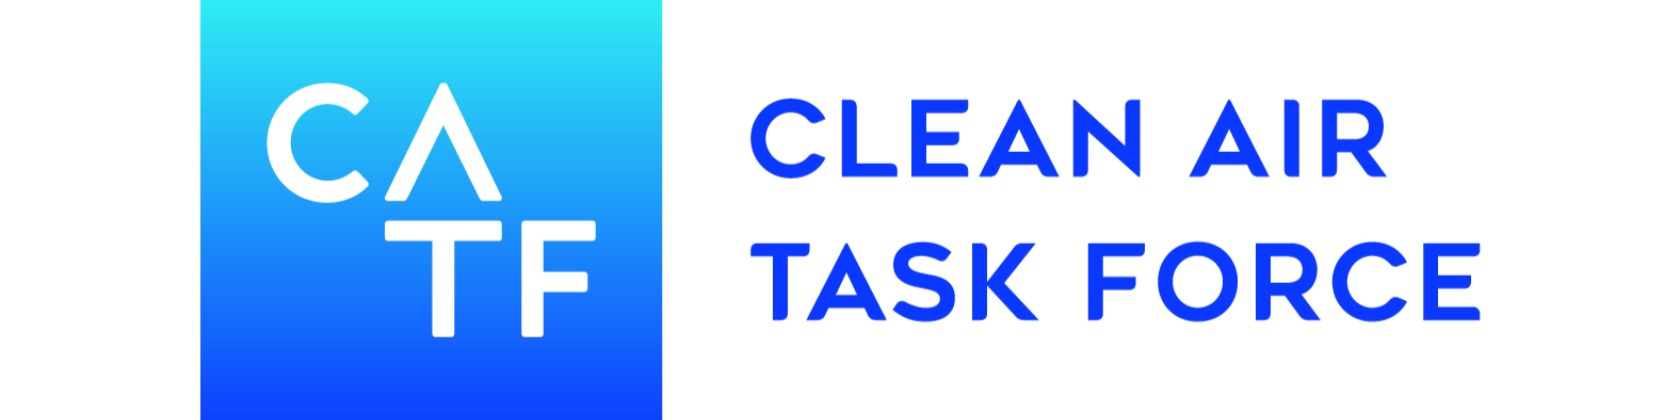 CATF: Clean Air Task Force